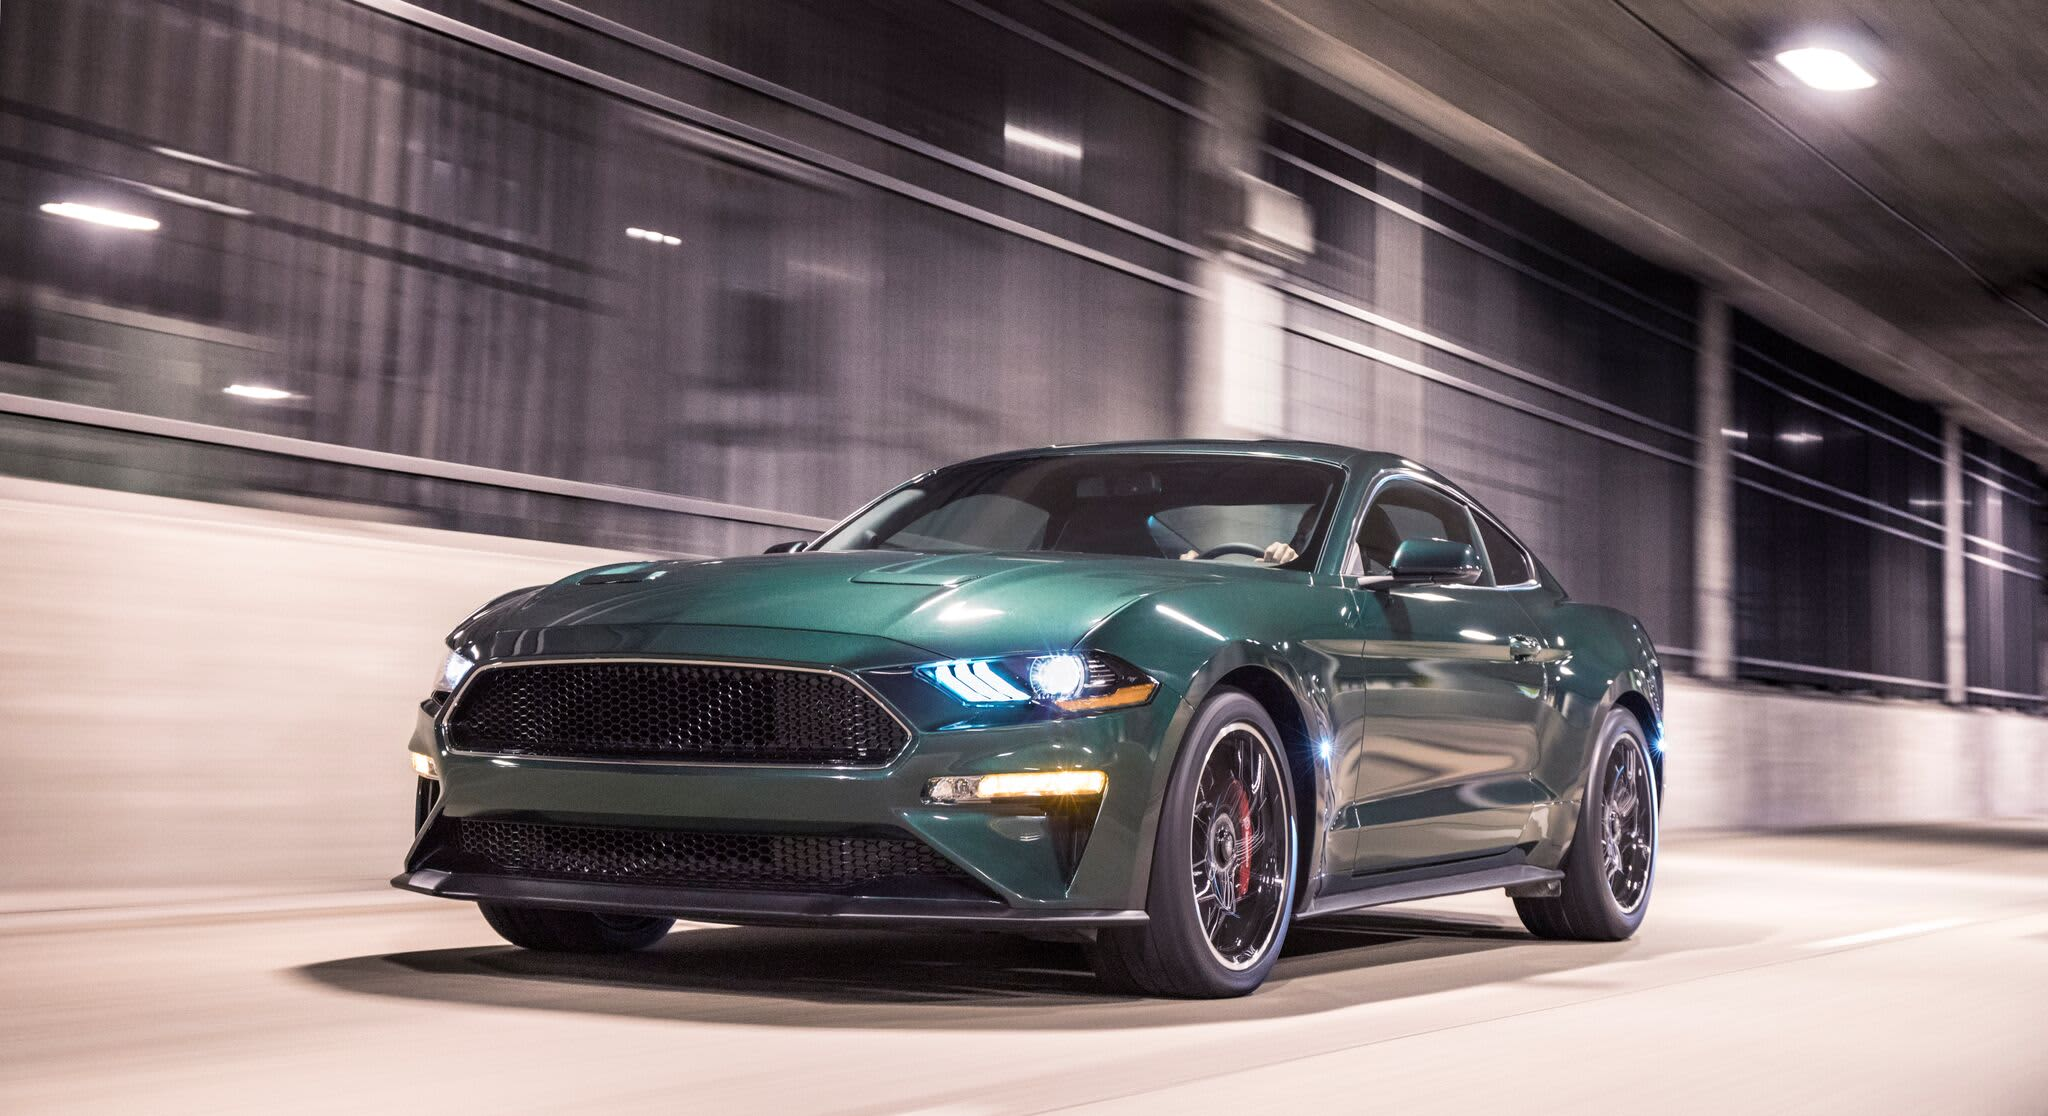 Ford Has Made 10 Million Mustangs A History Of The Iconic Sports Car 1954 Mustang Shelby